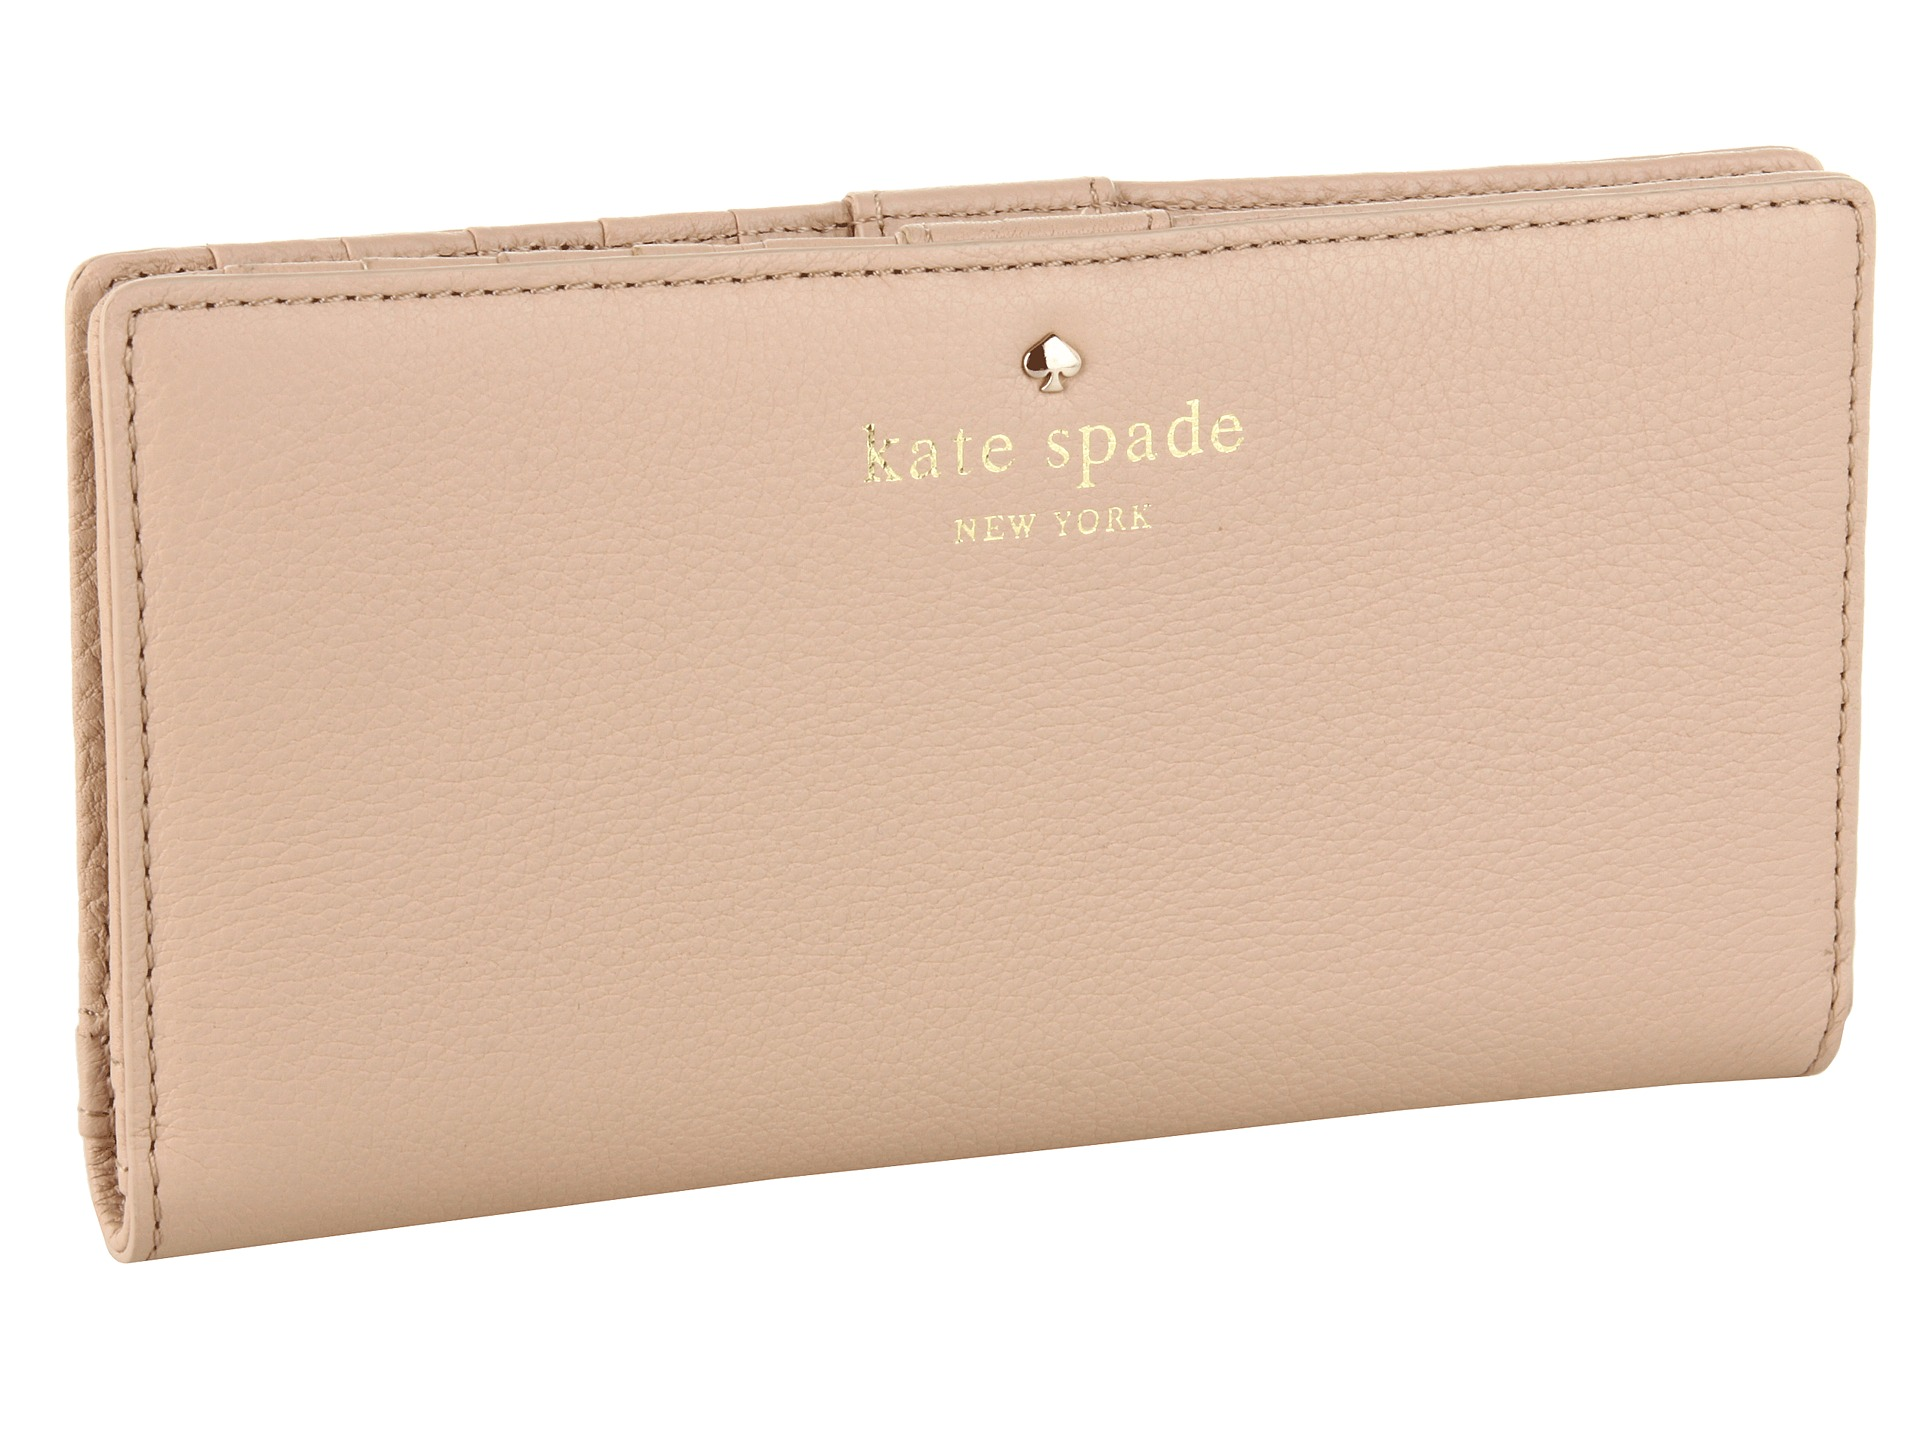 Kate Spade New York Cobble Hill Zoey $198.00  Kate